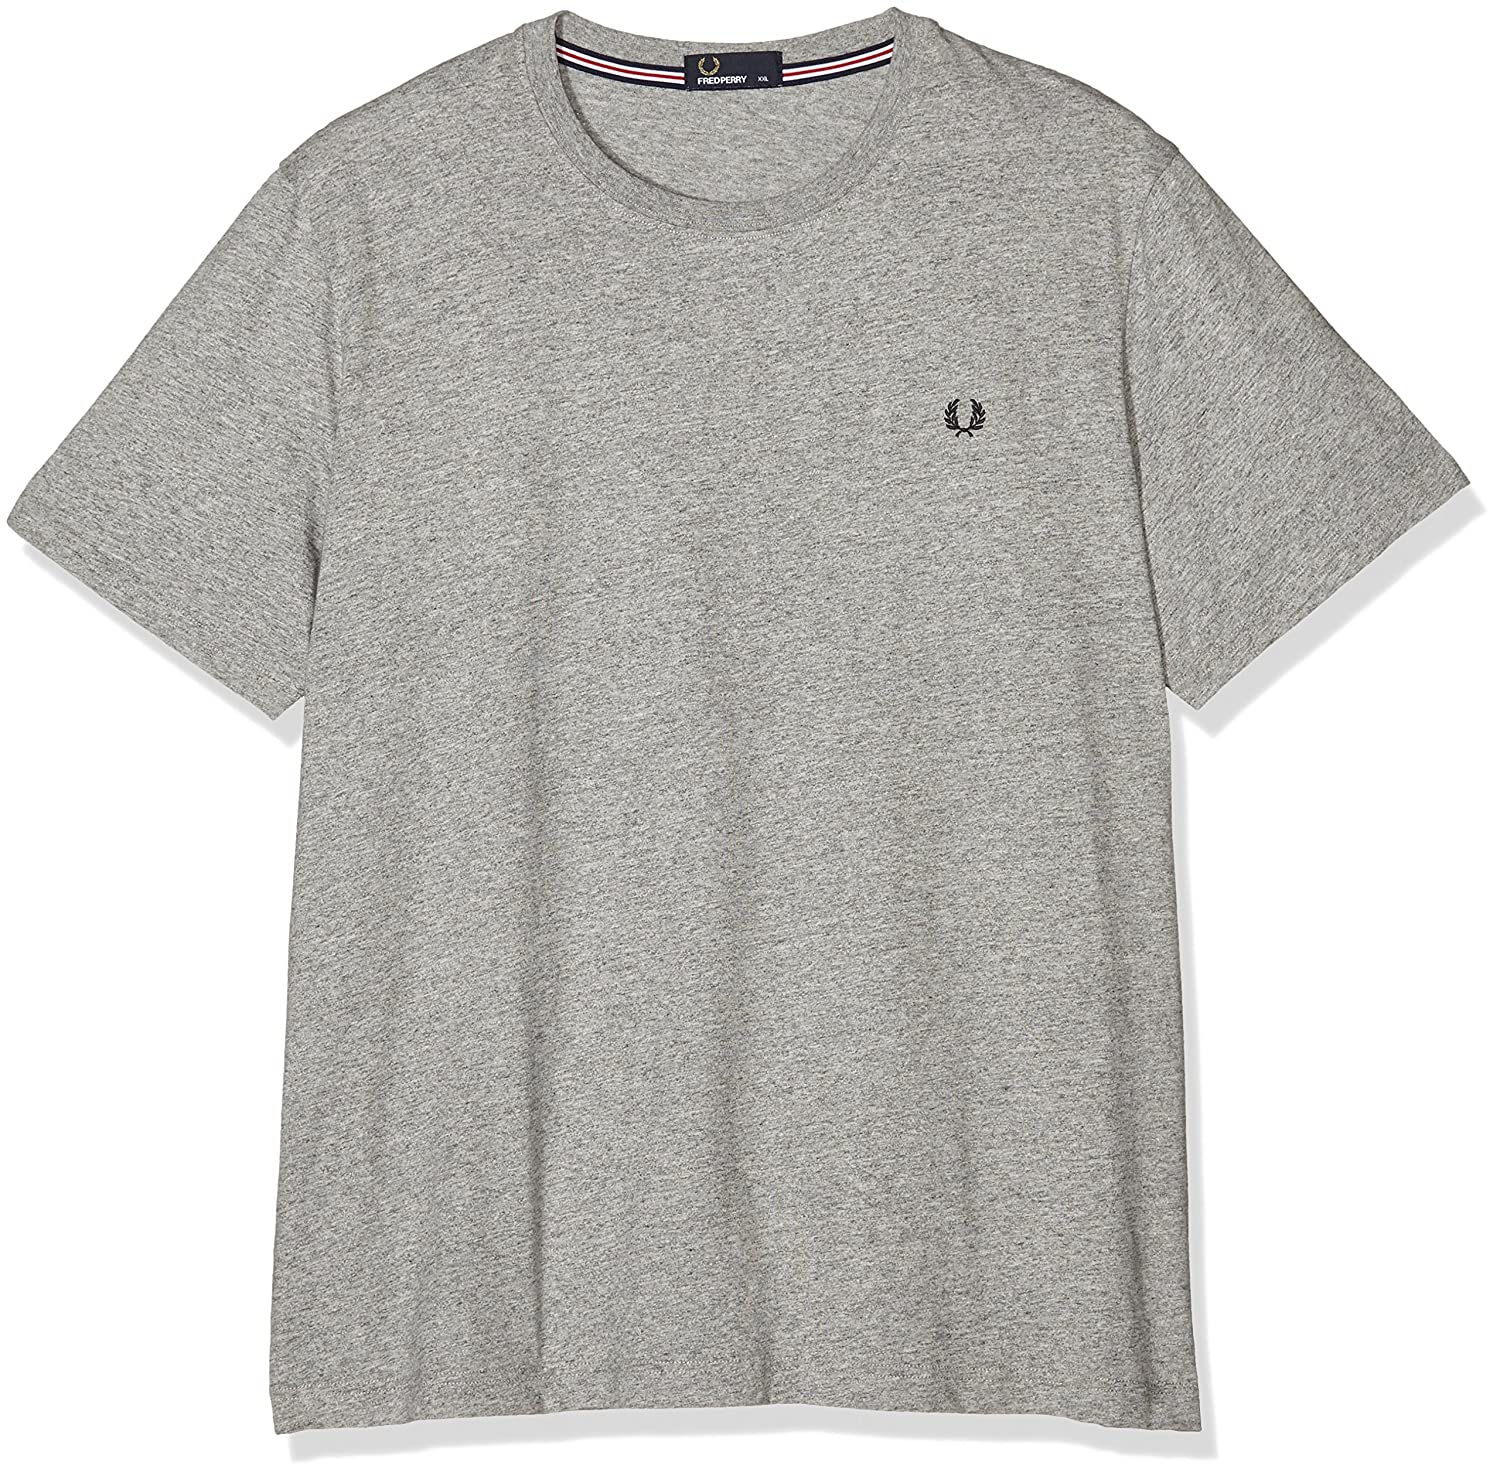 Fred Perry Men's Crew Neck T-Shirt M6334